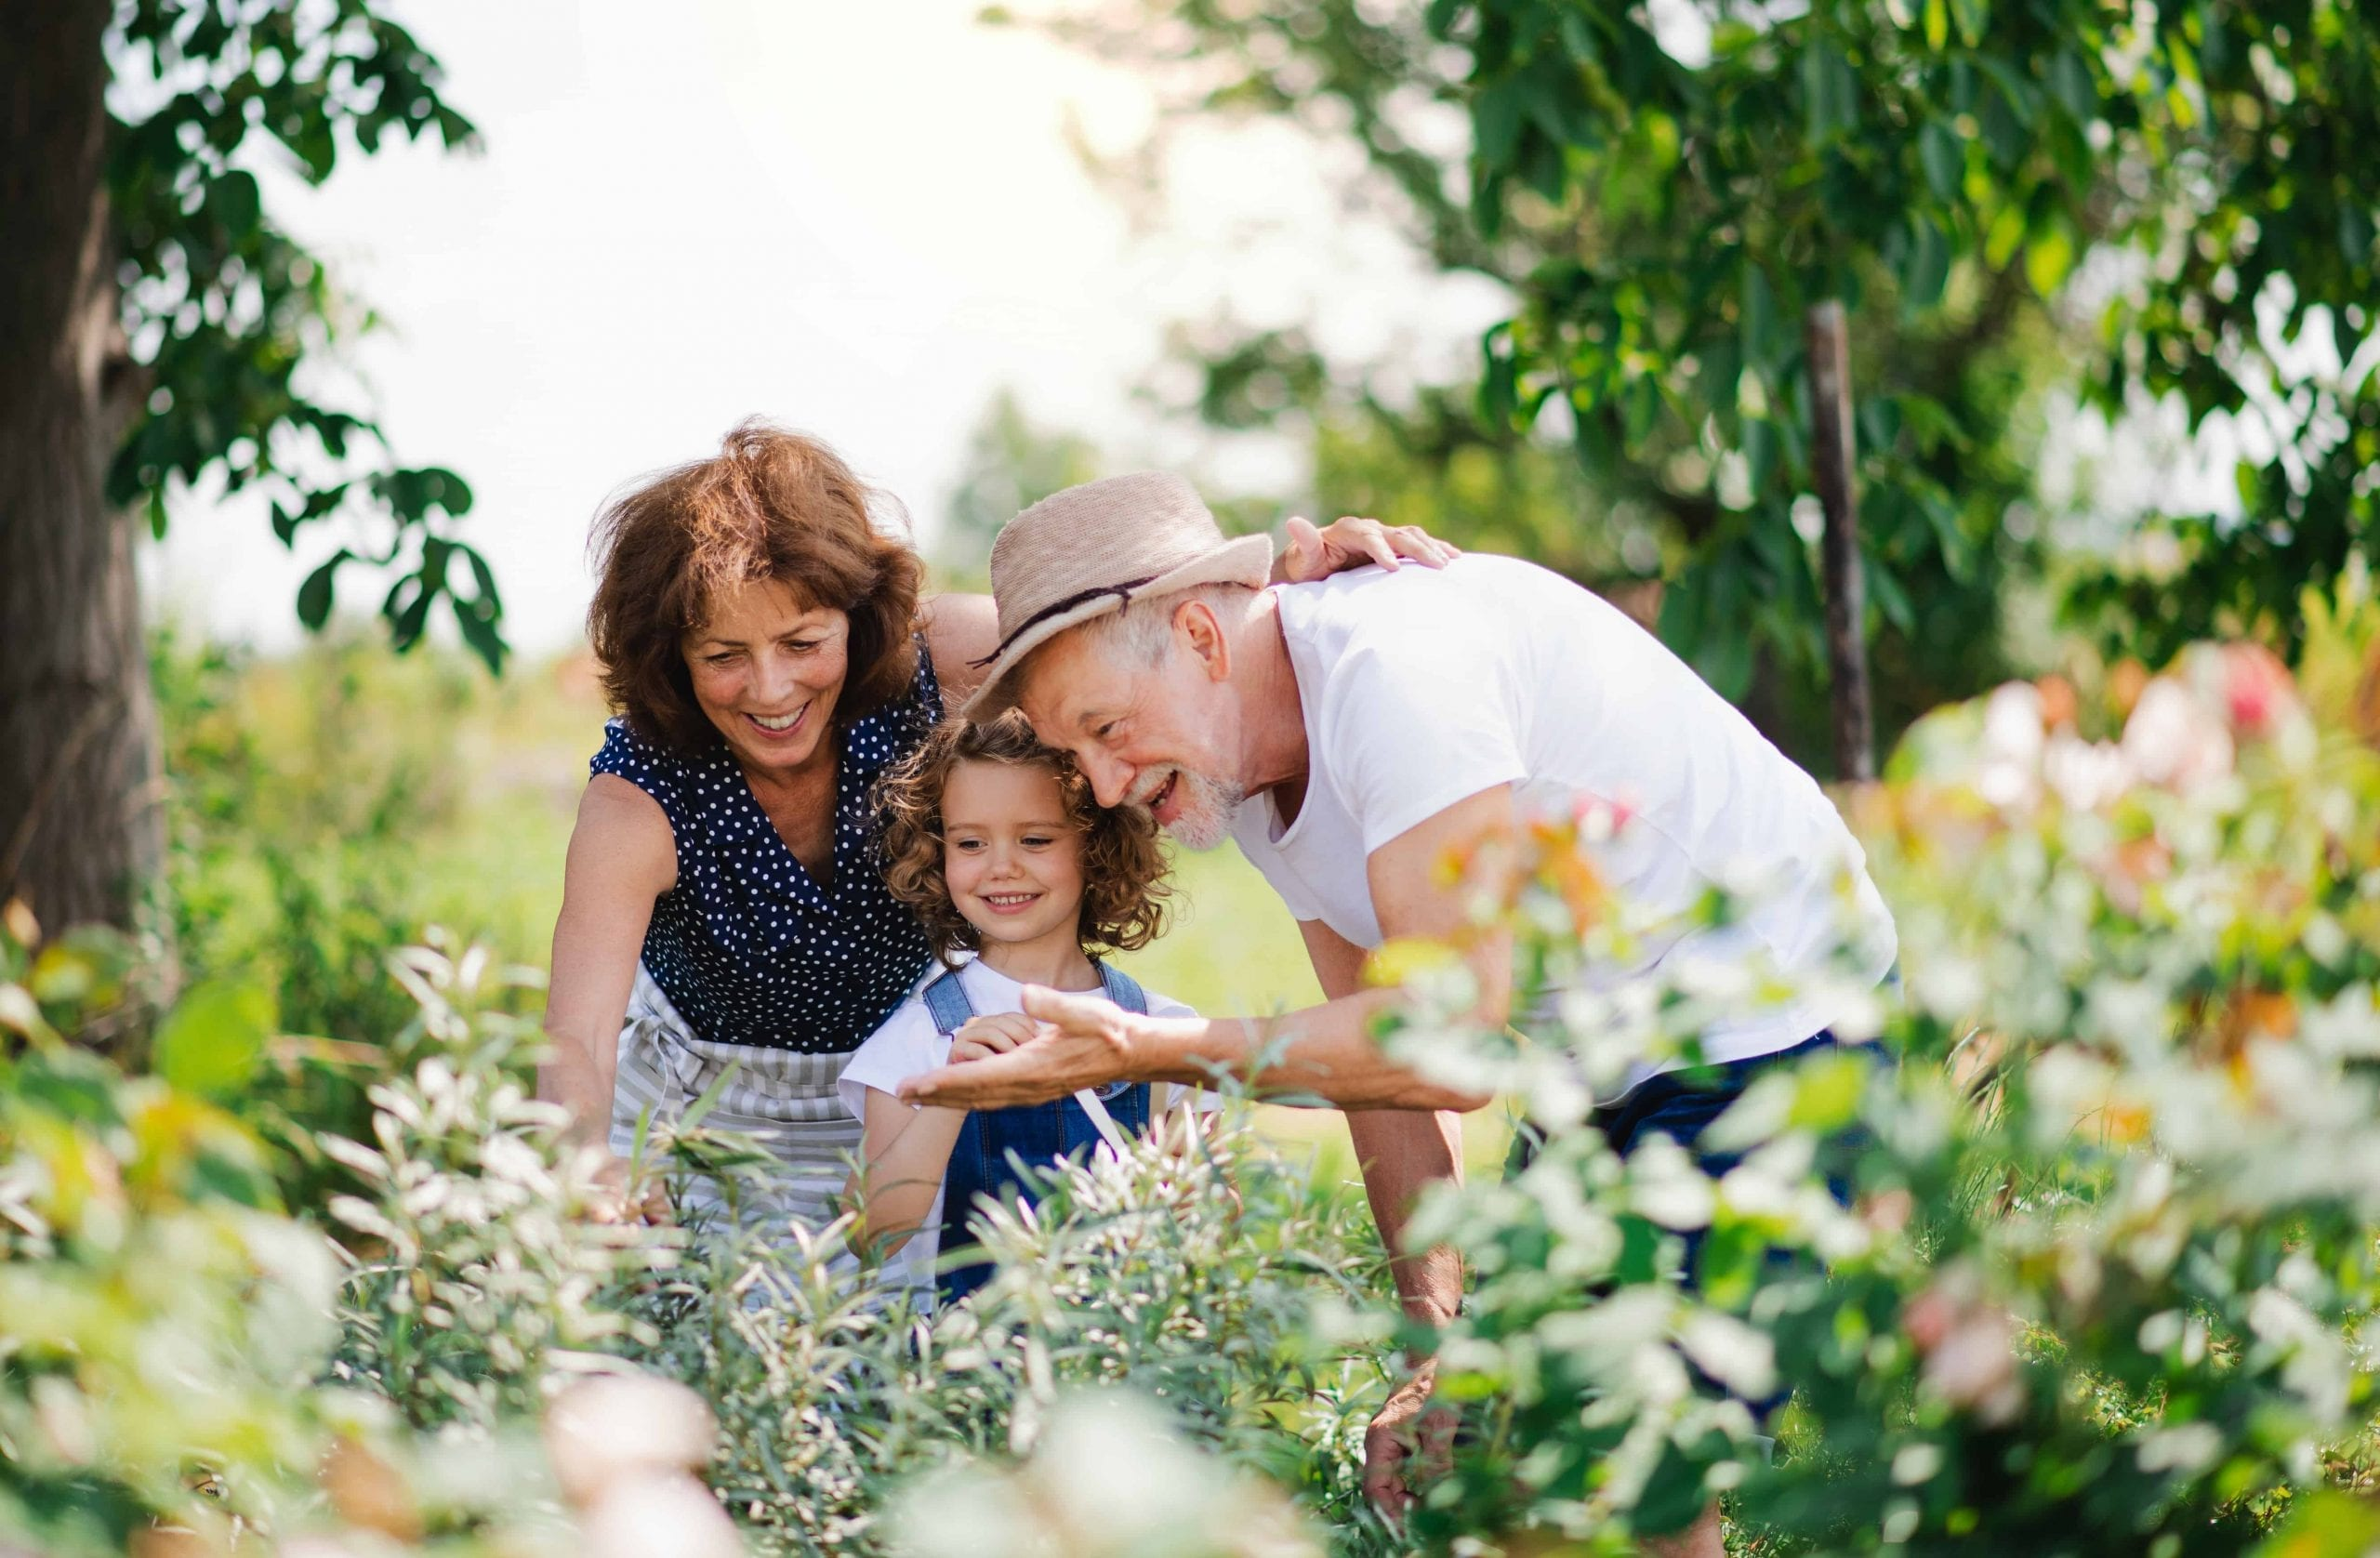 grandparents with granddaughter looking at plants